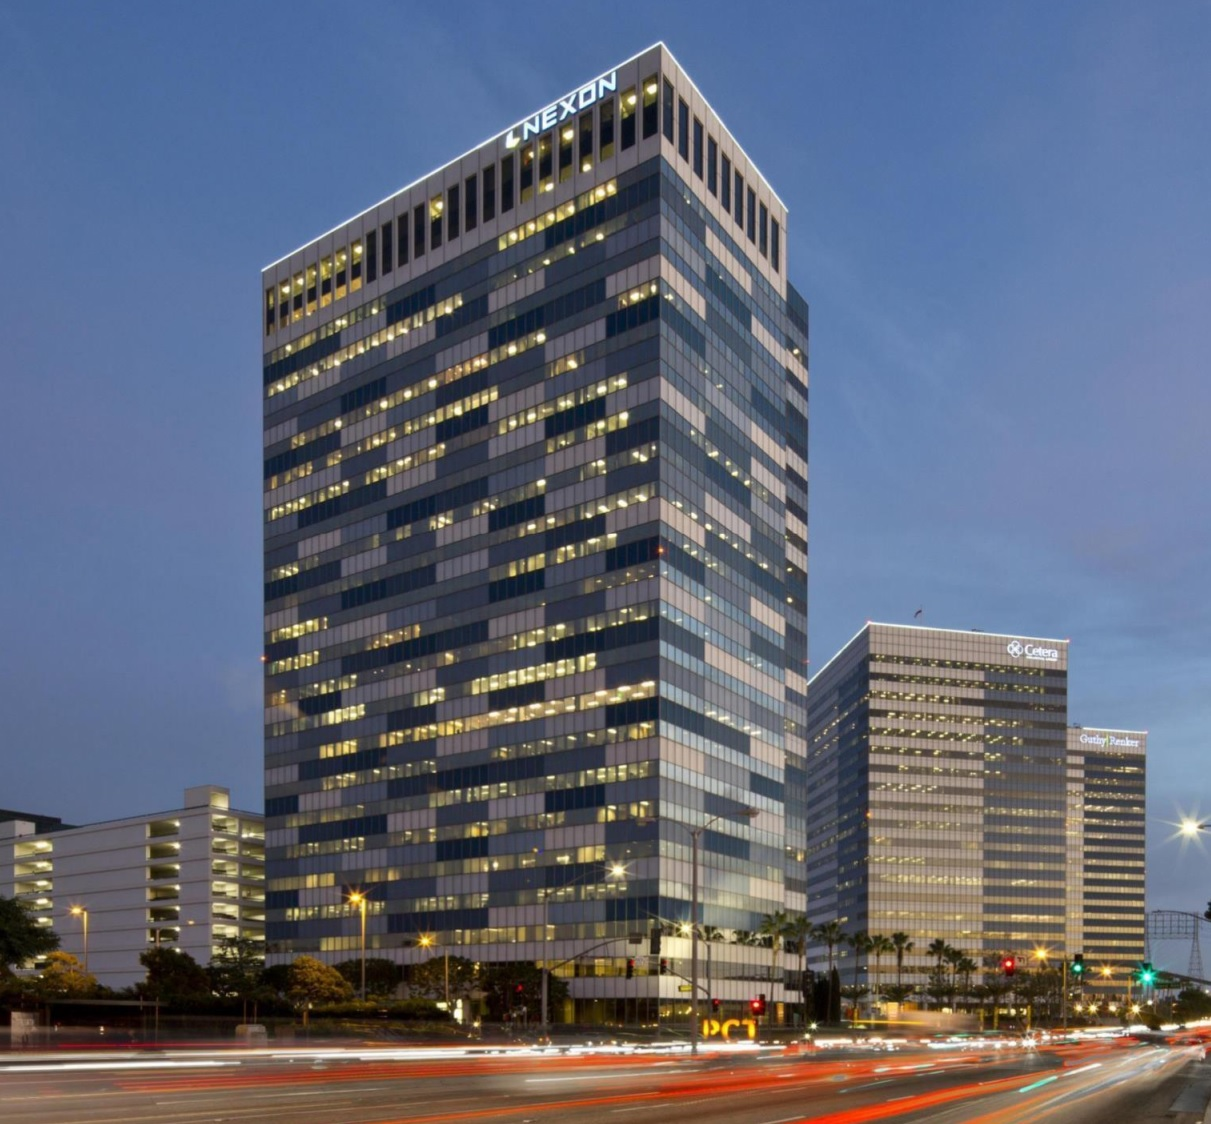 PCT   El Segundo, CA - 1,586,000 SF  PCT (formerly known as Pacific Corporate Towers) is an iconic, three tower office campus on 11.75 acres in El Segundo, California. Prominently located on Pacific Coast Highway between El Segundo and Grand Boulevards, this award-winning project's scale presents the unique opportunity to offer tenants a best-in-class workplace environment complete with a distinguished amenity package including on-site fitness and basketball court, two restaurants, and shared conferencing facilities for both small and large scale private events as well as outdoor meeting areas throughout. In the near future, Artisan Realty Advisors will commence its improvement plan to modernize and renovate over 40 elevators throughout the campus, enhance common area lobbies, restrooms, corridors and outdoor spaces, and elevate the quality of the existing amenity base and community events in order to further solidify PCT's place as the home to Los Angeles' and the South Bay's most discerning companies.   AccessPCT.com